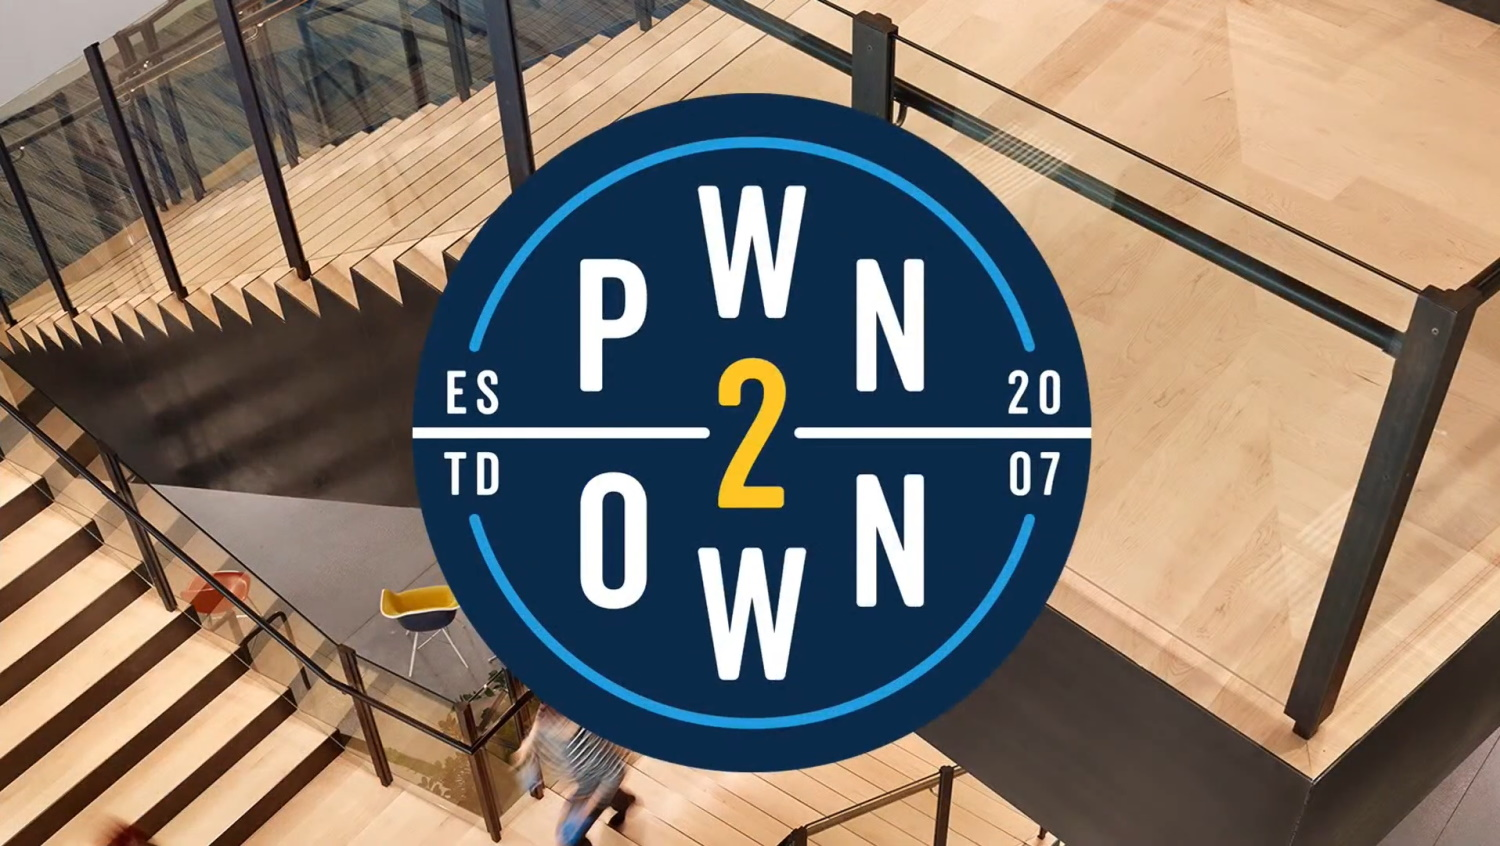 Pwn2Own 2021 hacking contest ends with a three-way tie